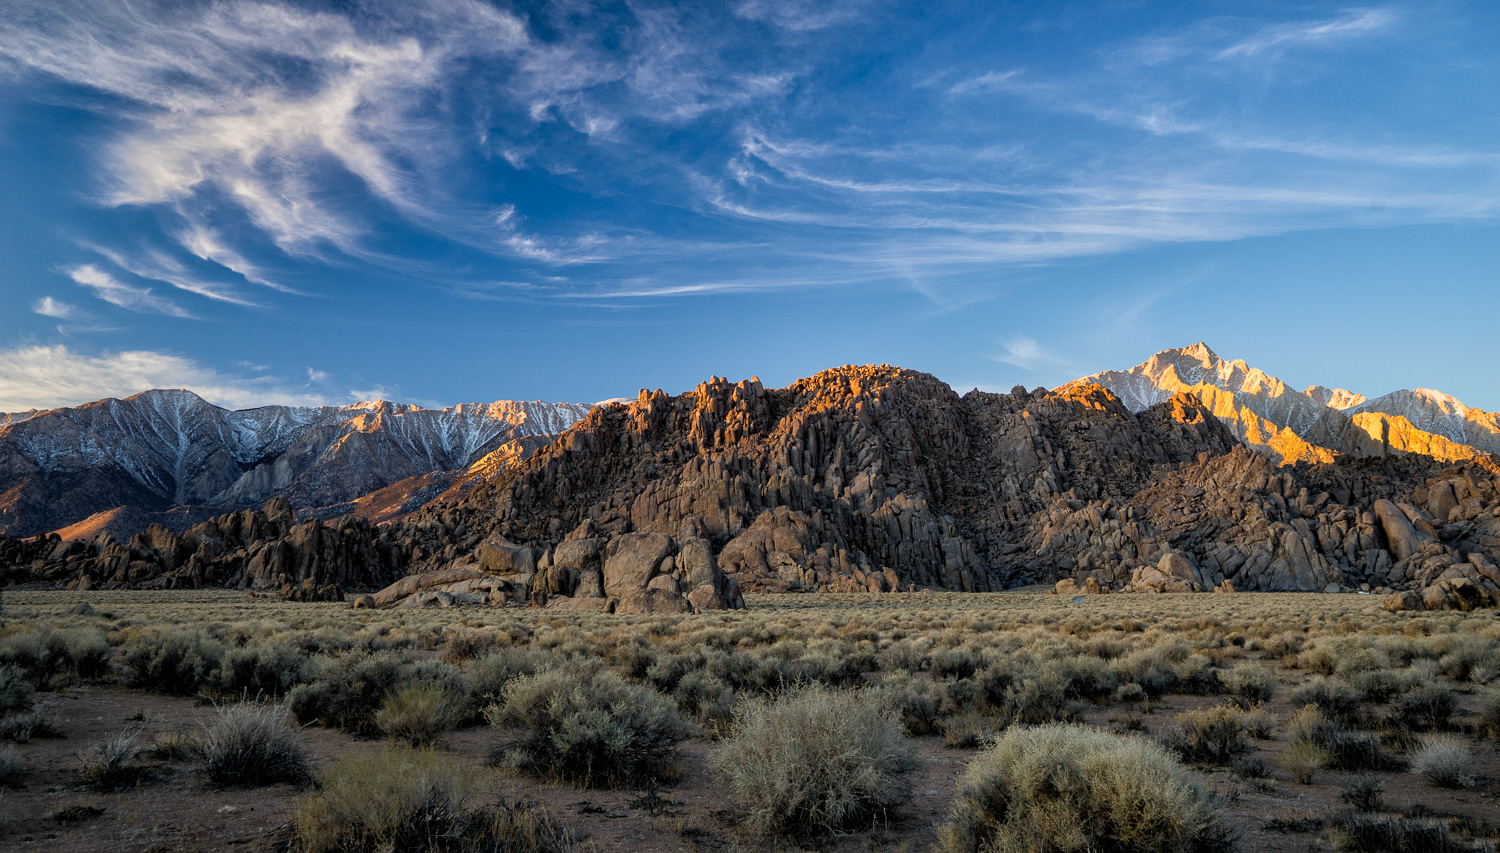 Sunrise Alabama Hills, Lone Pine, California